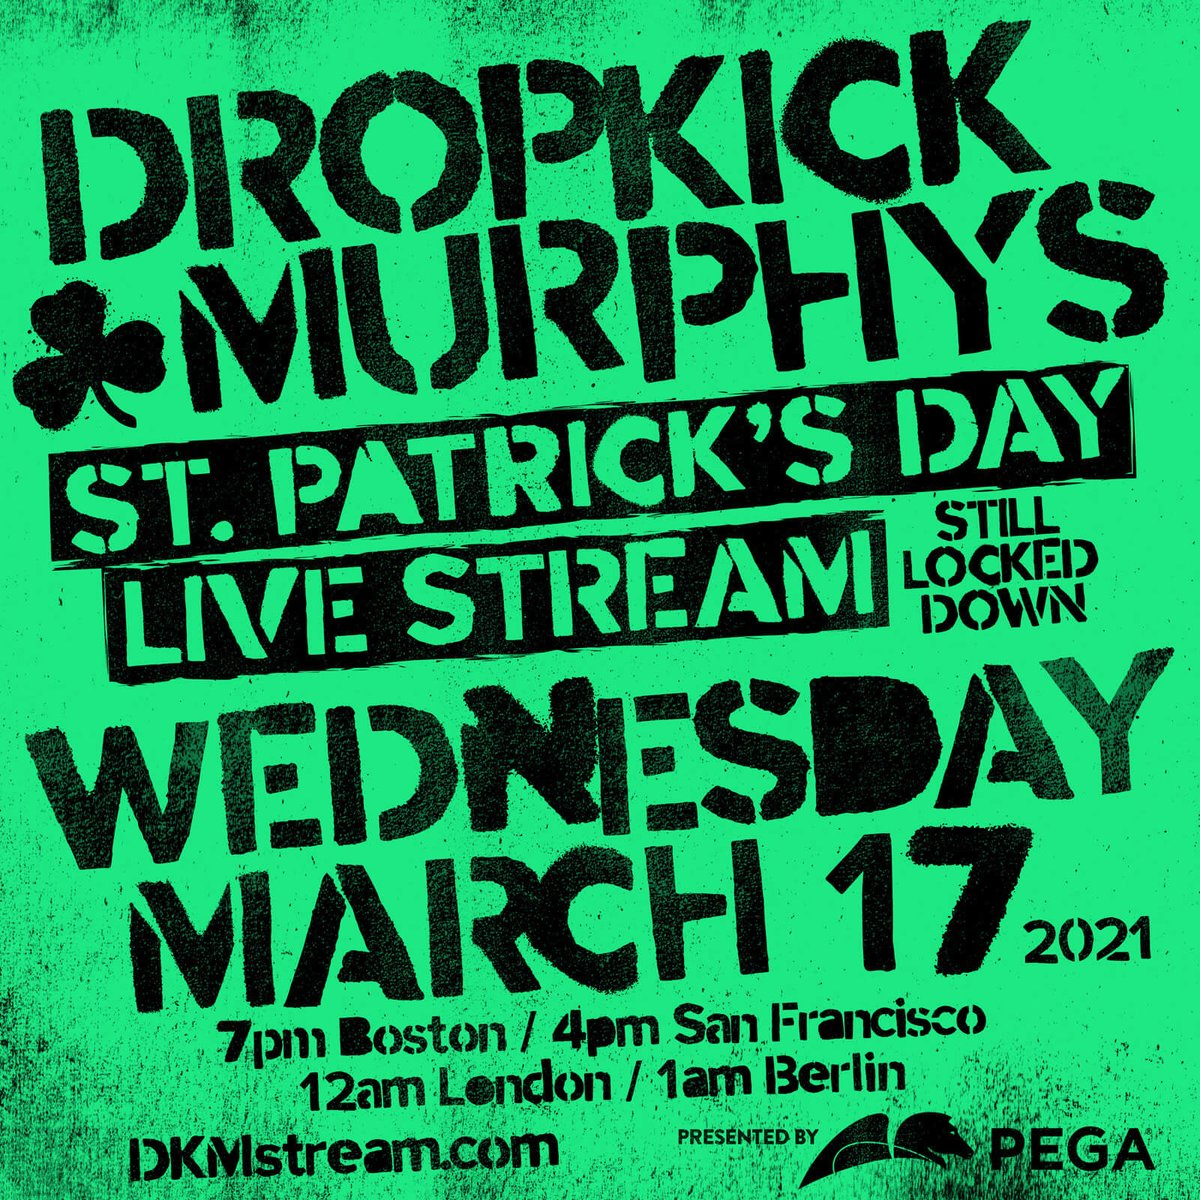 For the 2nd year in a row, we'll be playing a March 17 show in Boston...beamed to your living room!!   ST. PATRICKS DAY LIVE STREAM 2021...STILL LOCKED DOWN will be FREE thanks to our friends at @pega & by YOU!! Read More: